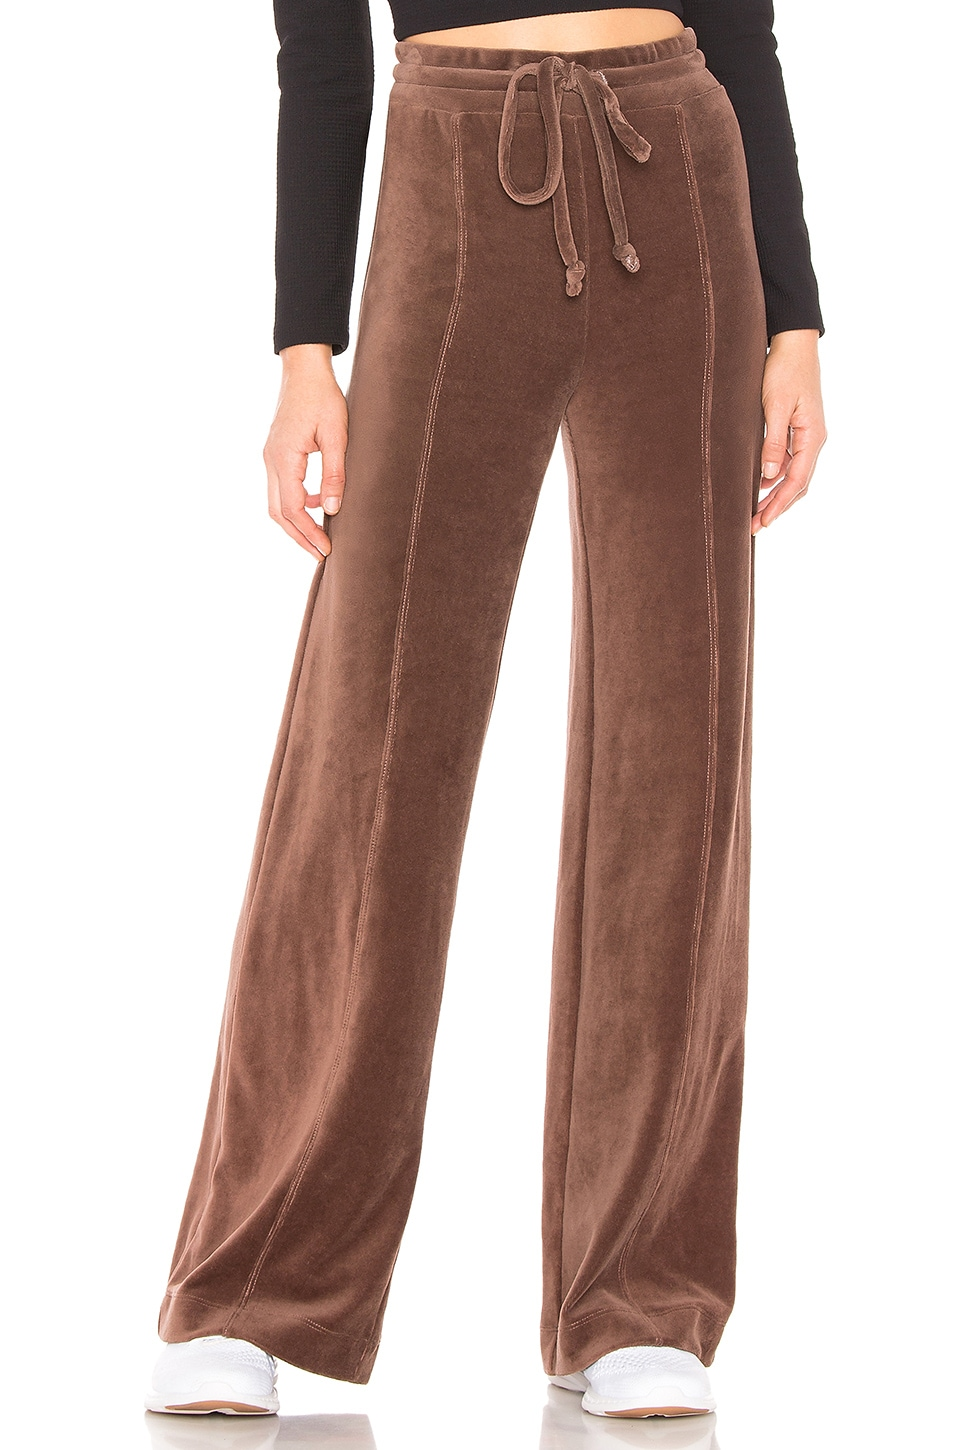 YEAR OF OURS Velour Warm Up Pants in Brown